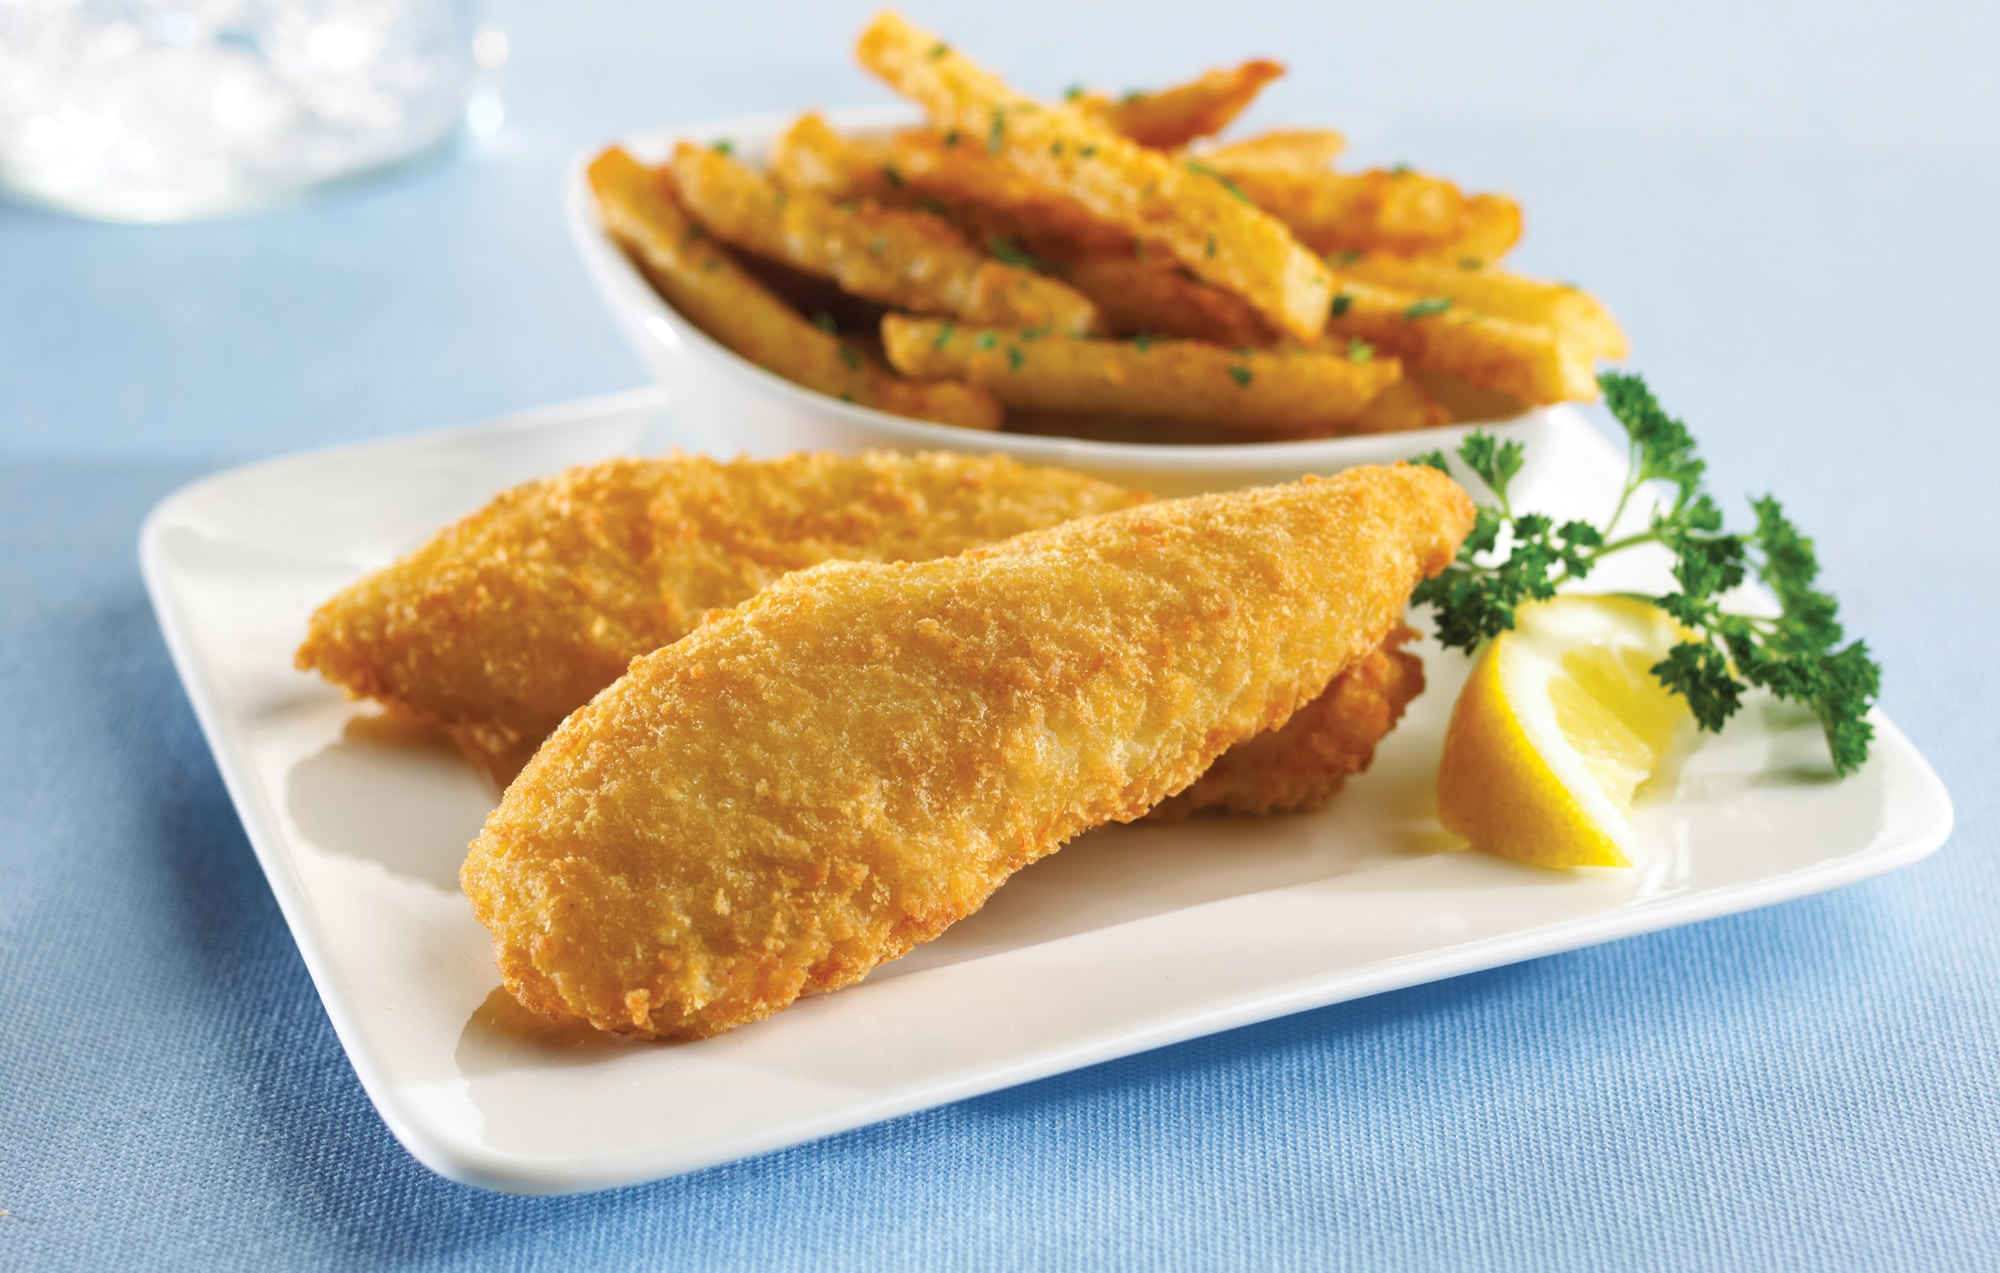 Panko Breaded Pollock Fillets 2 3 Oz King And Prince Seafood King And Prince Seafood